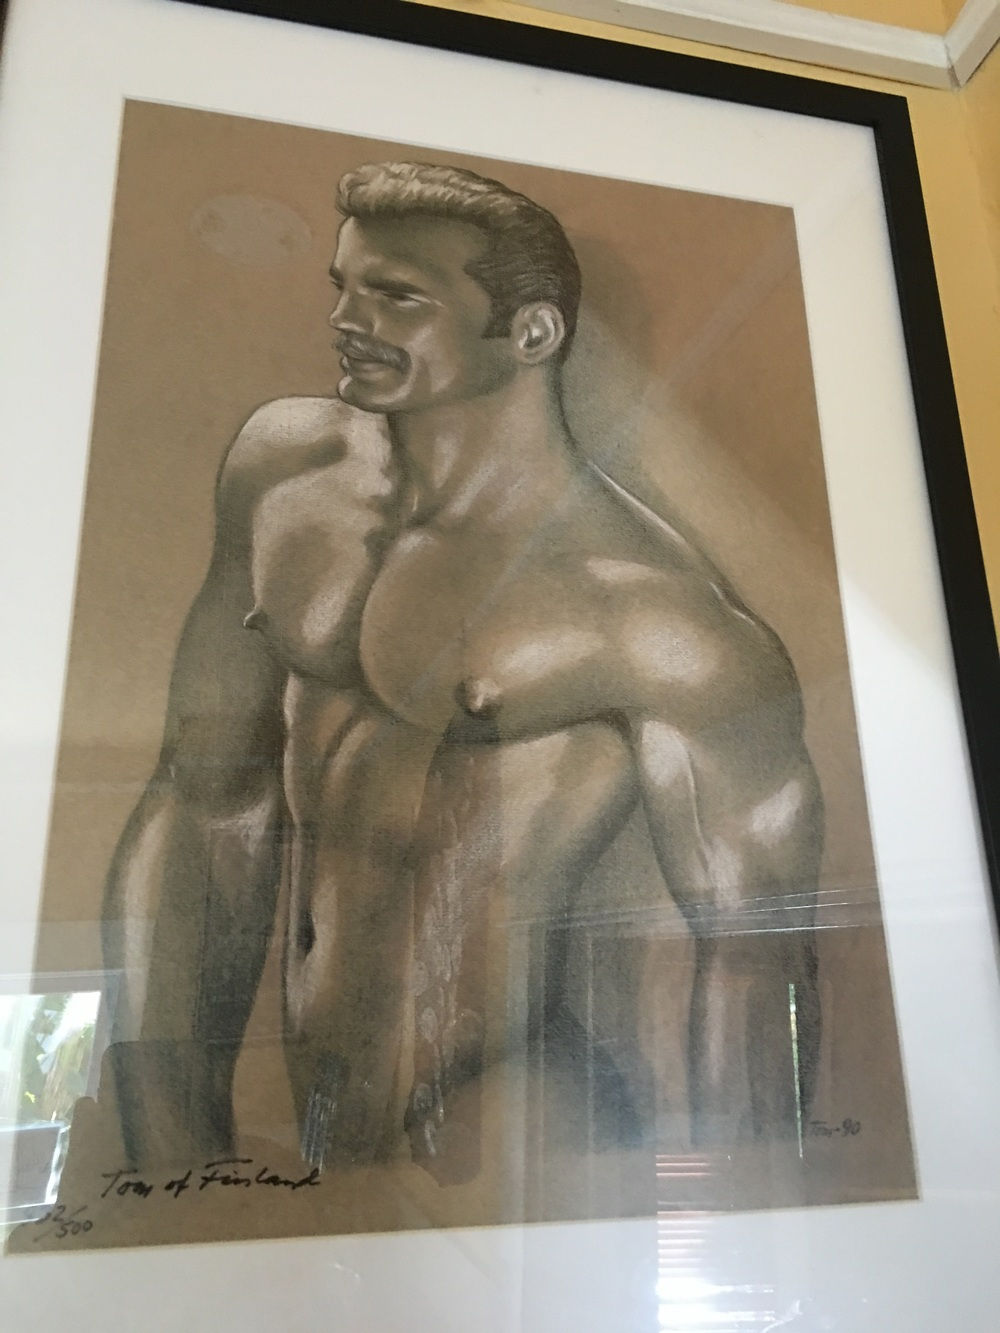 Perfection by Tom of Finland